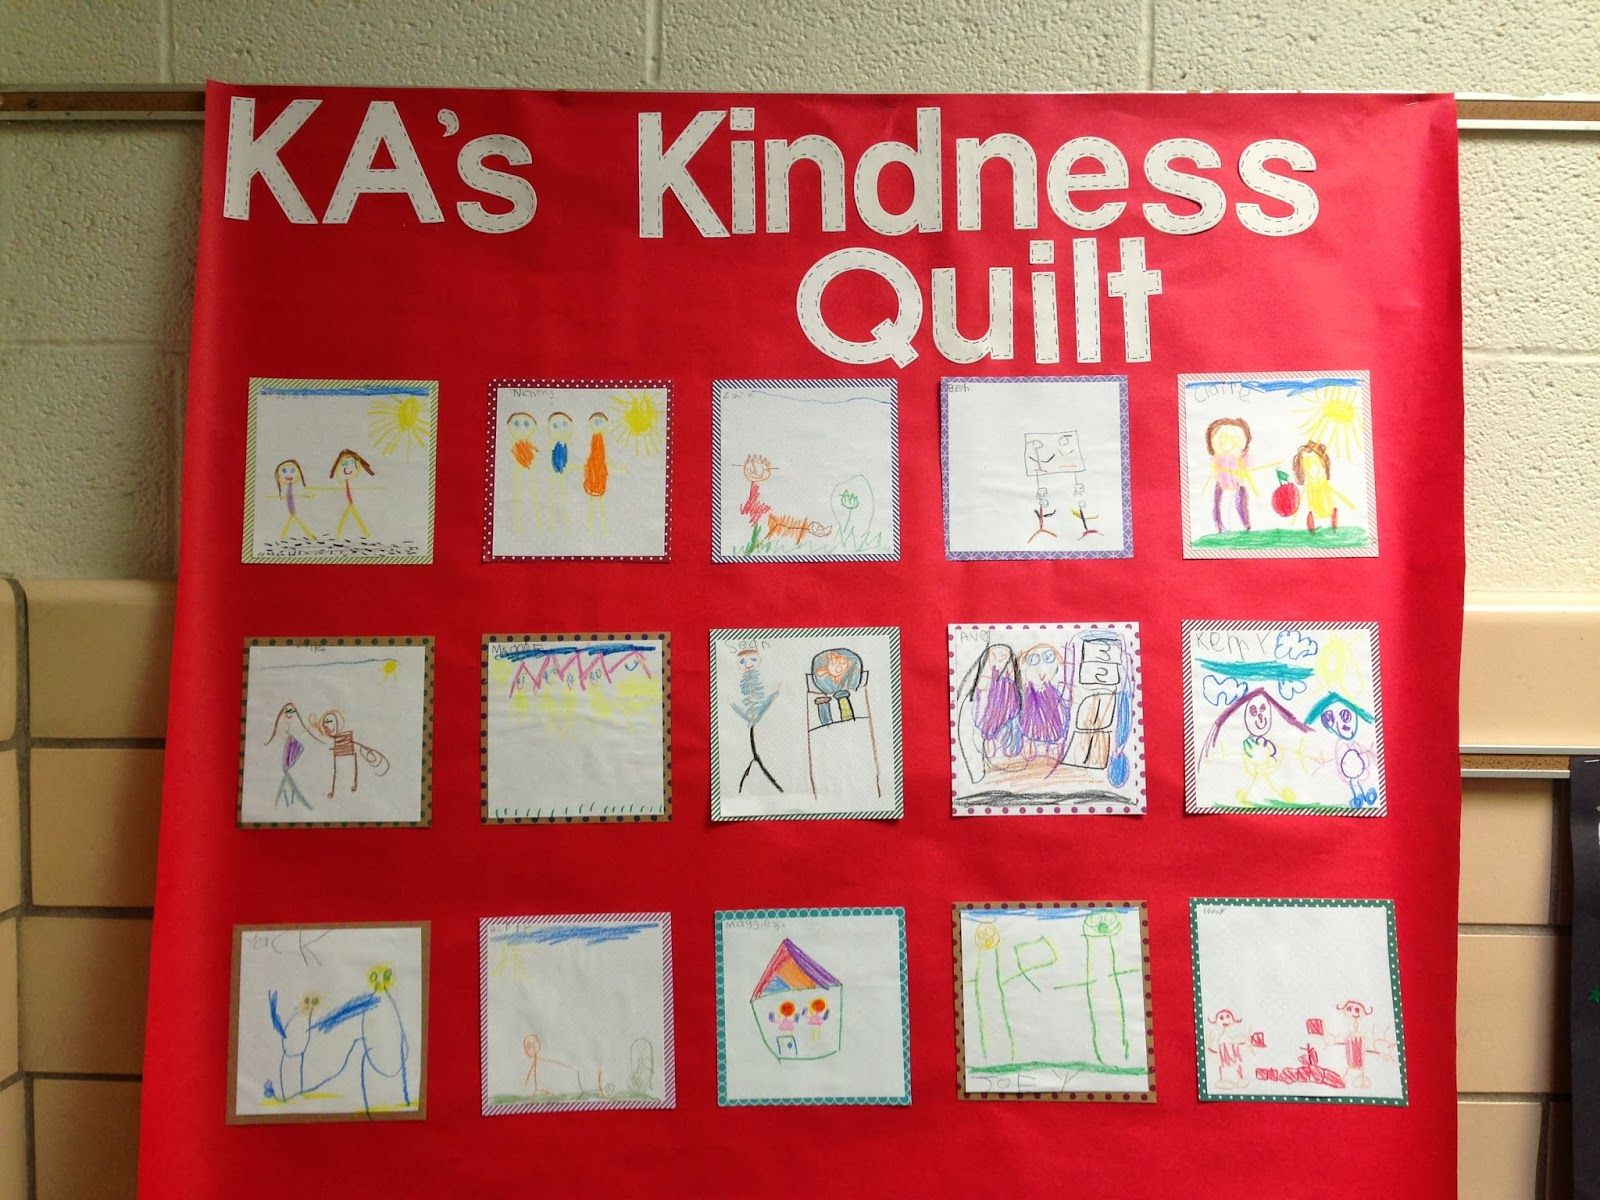 We Discussed Different Examples Of Kindness And Then Each